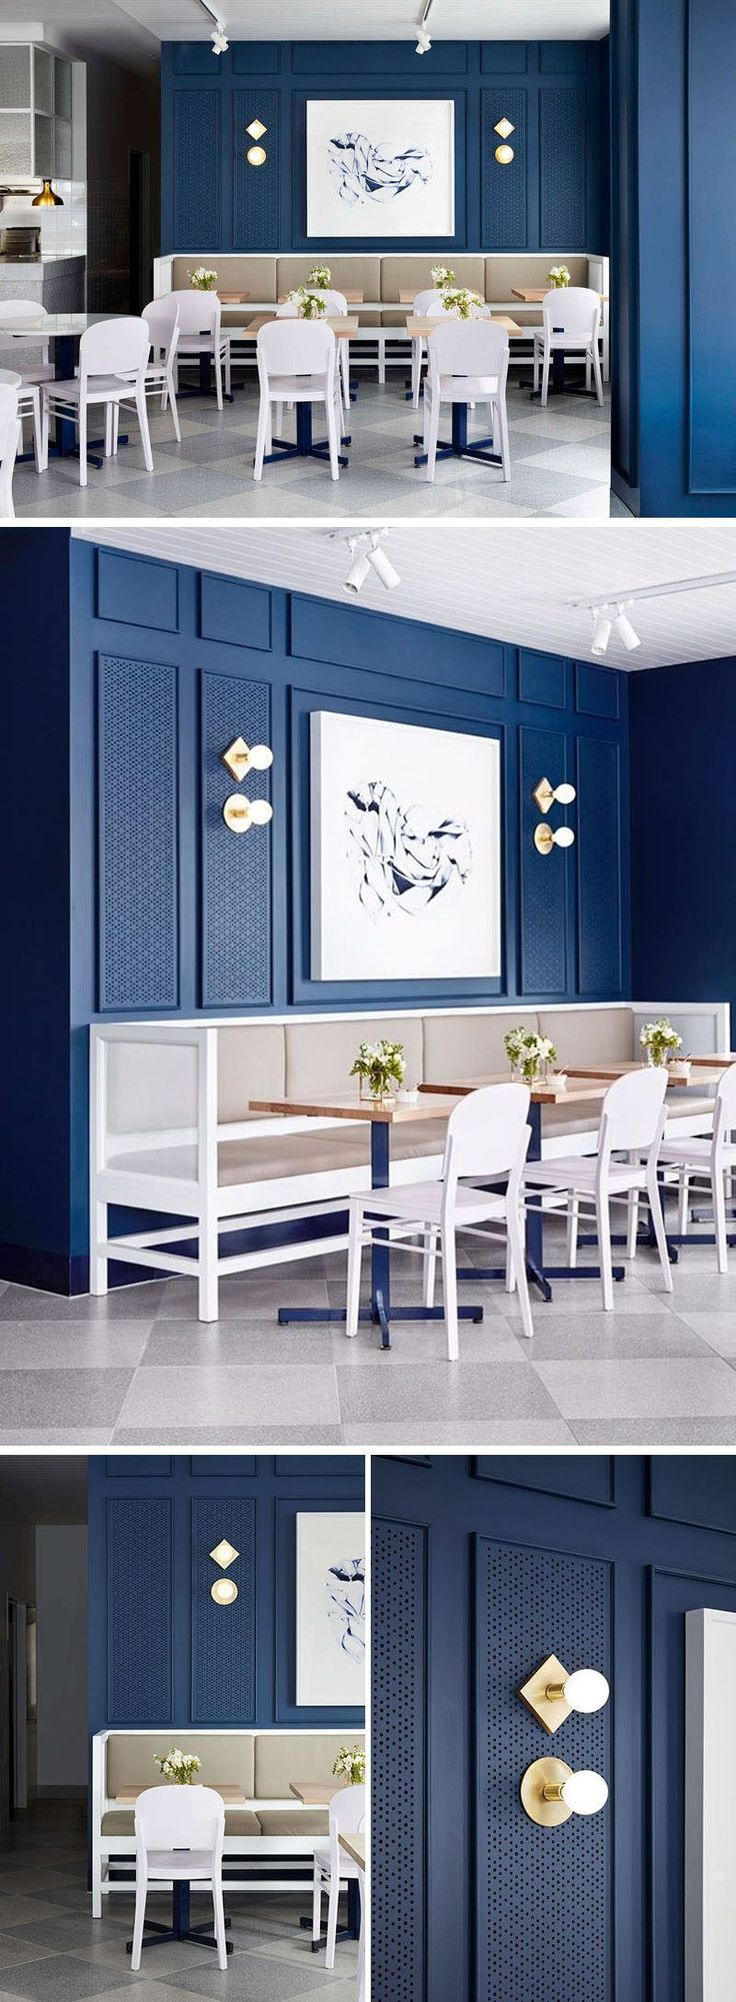 best 25 cafe interiors ideas on pinterest cafe design small cafe design and restaurant design - Blue Restaurant Ideas